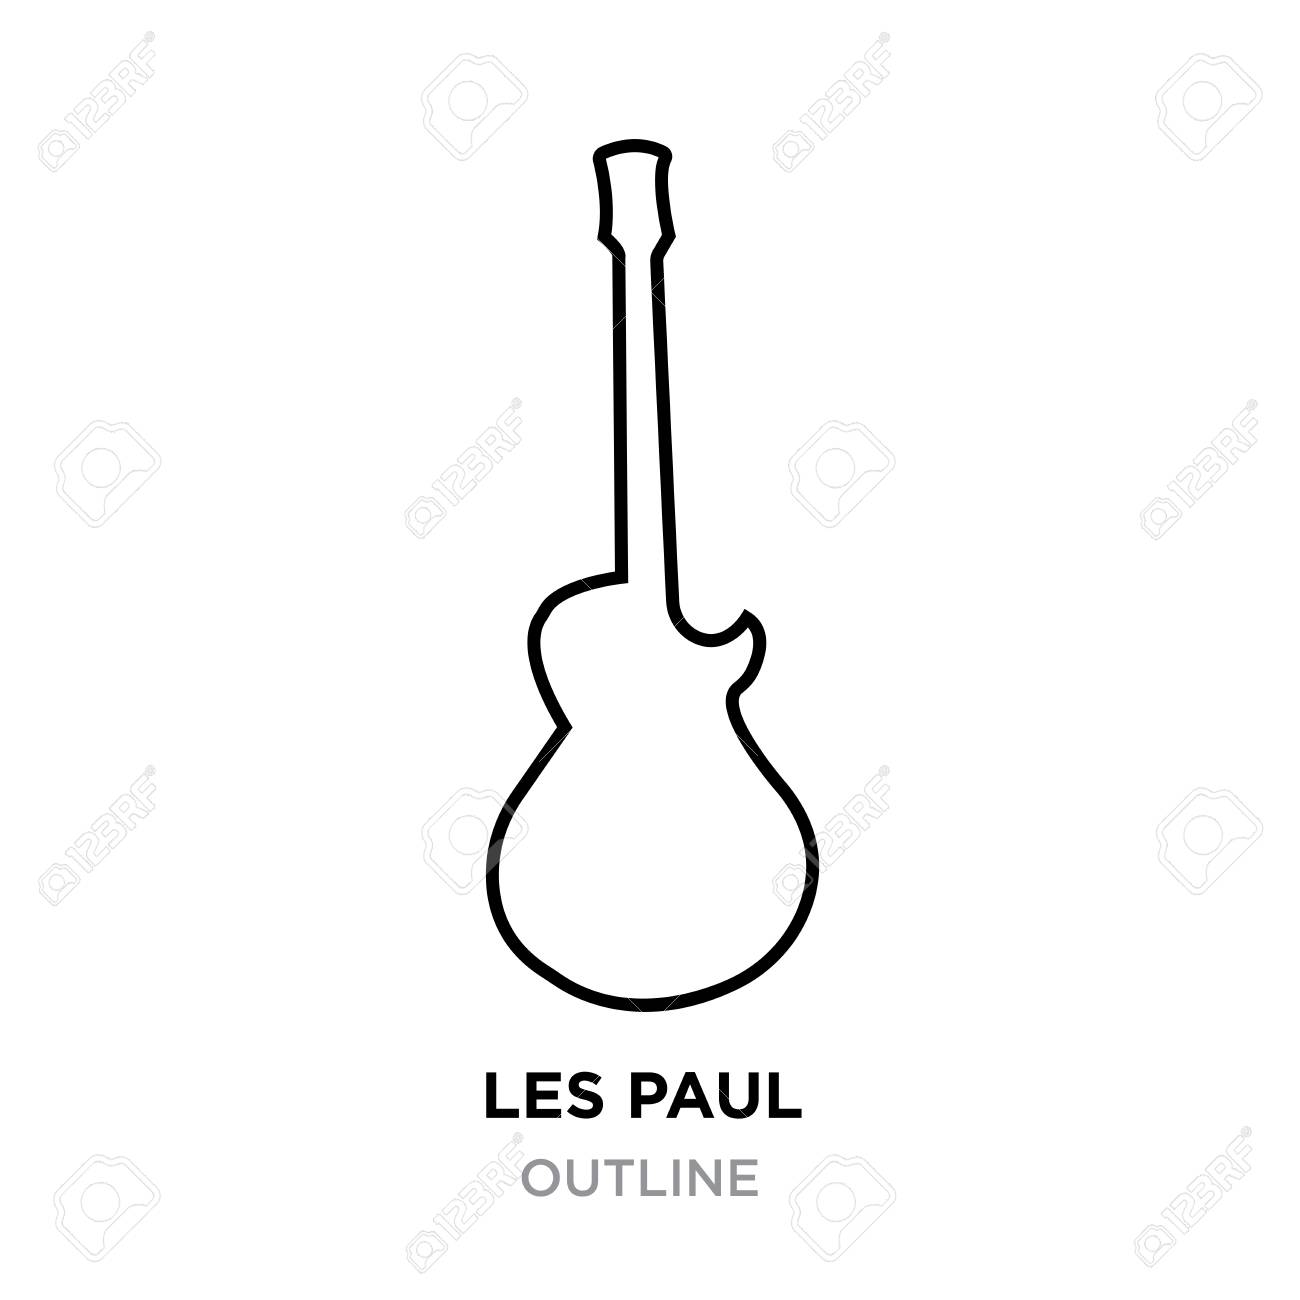 Image Les Paul outline on white background, vector illustration.